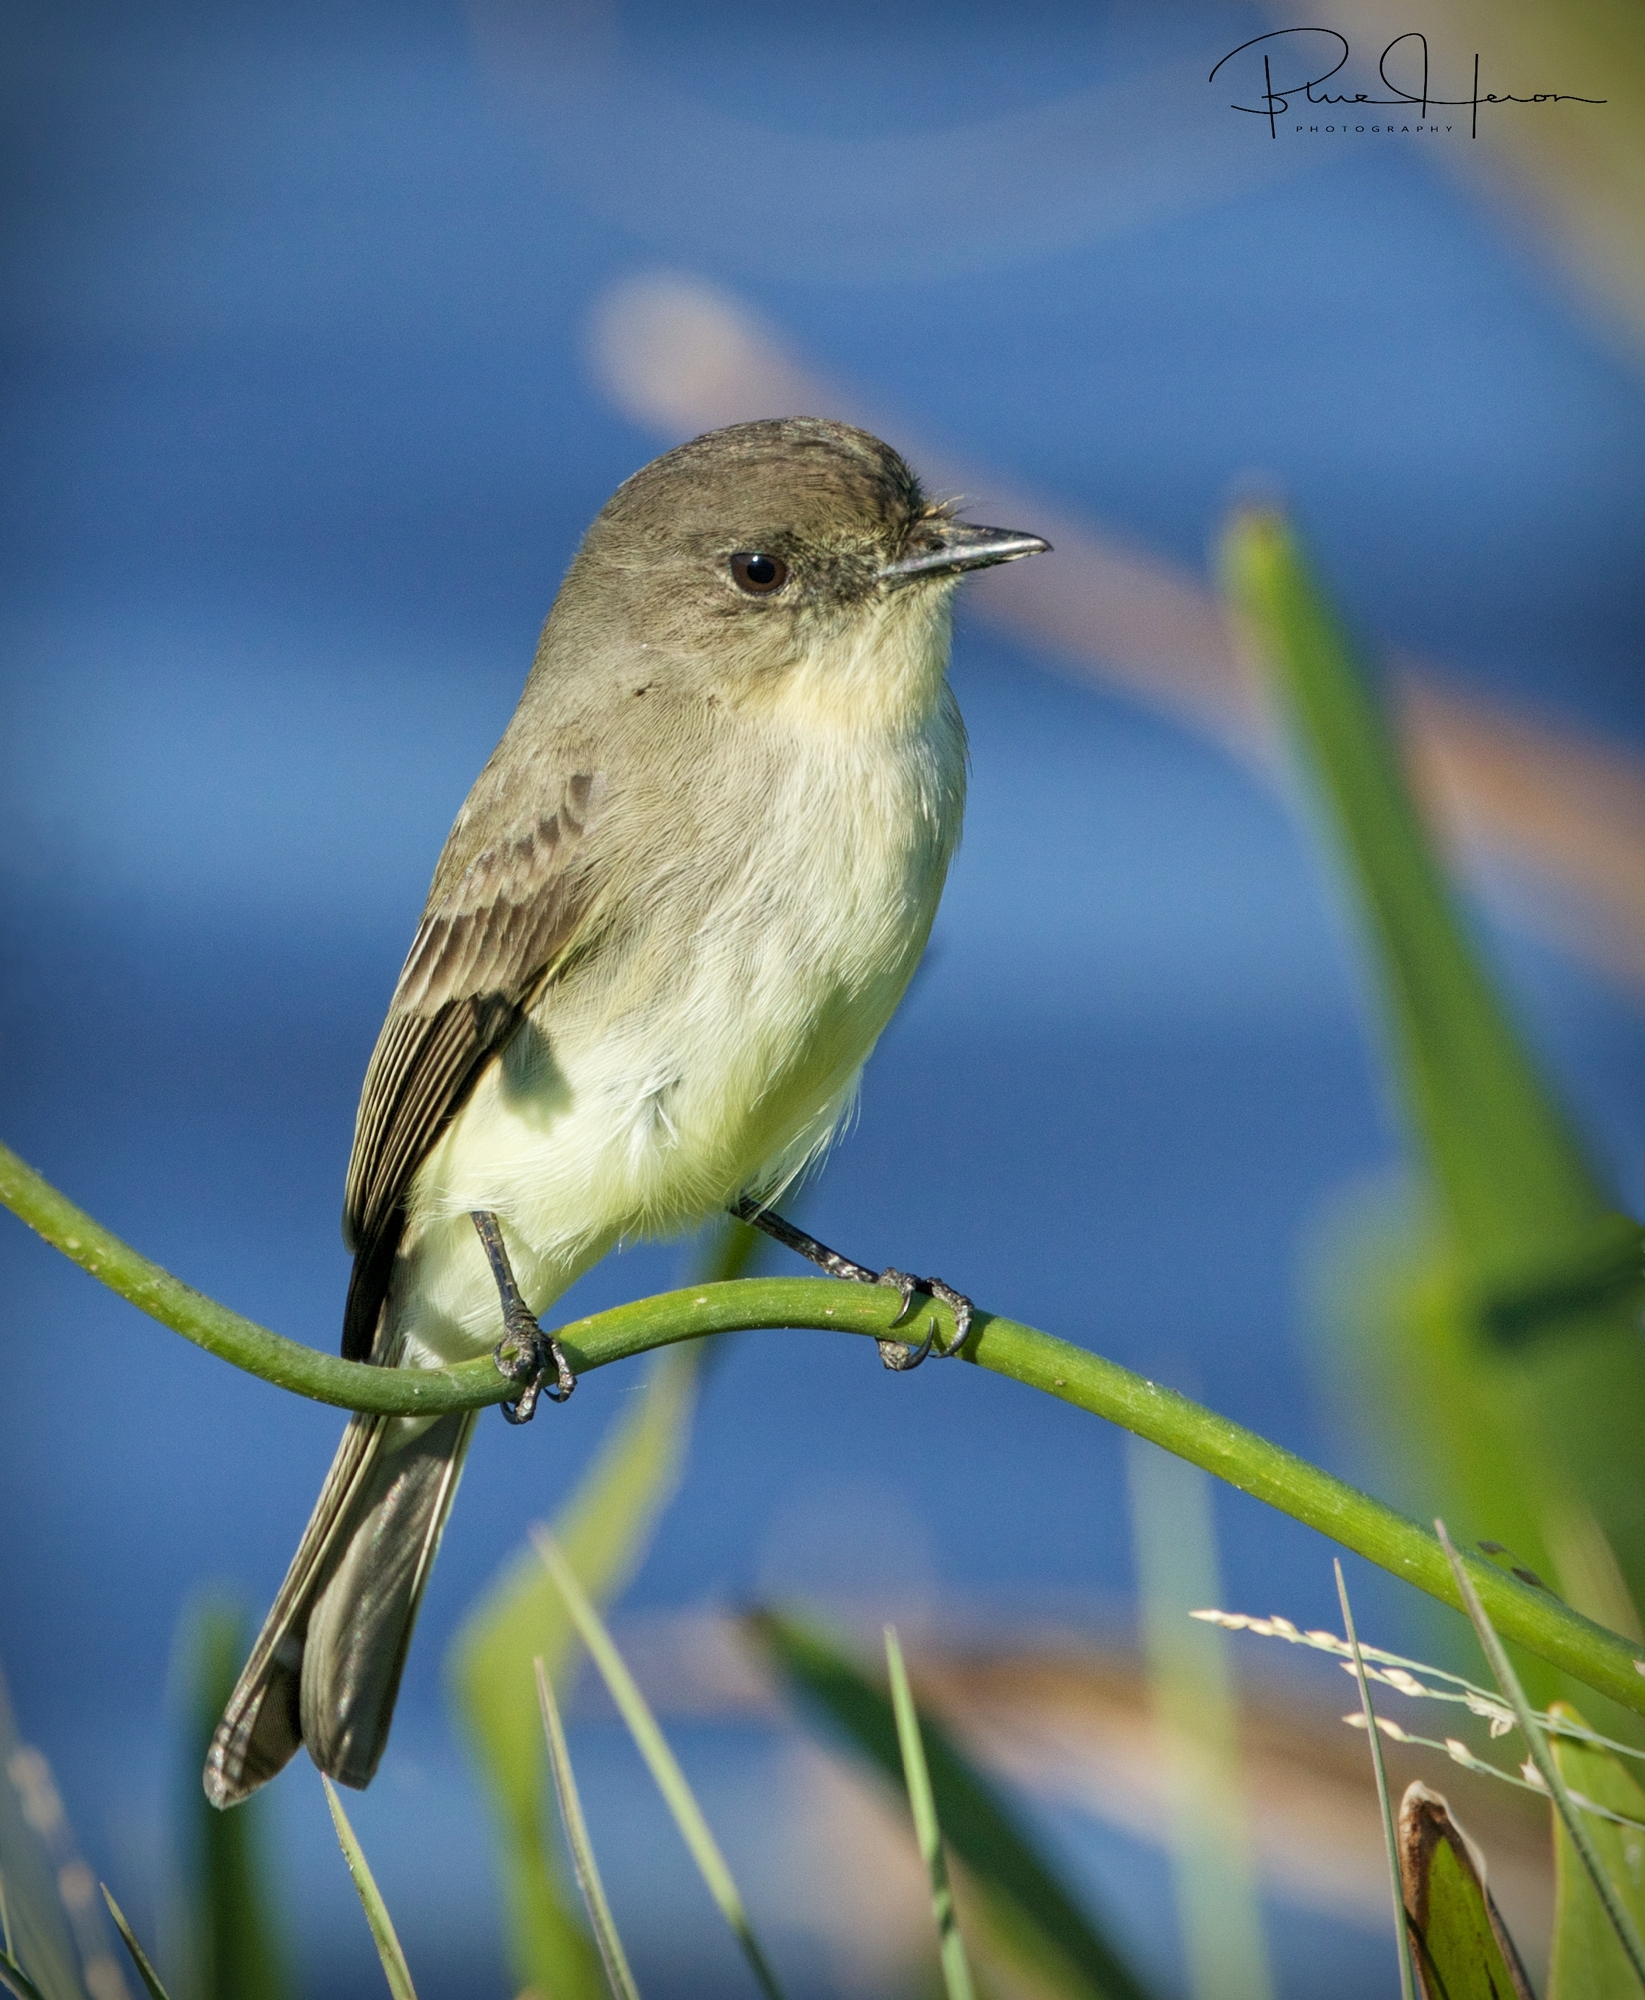 An Eastern Phoebe lights up the day